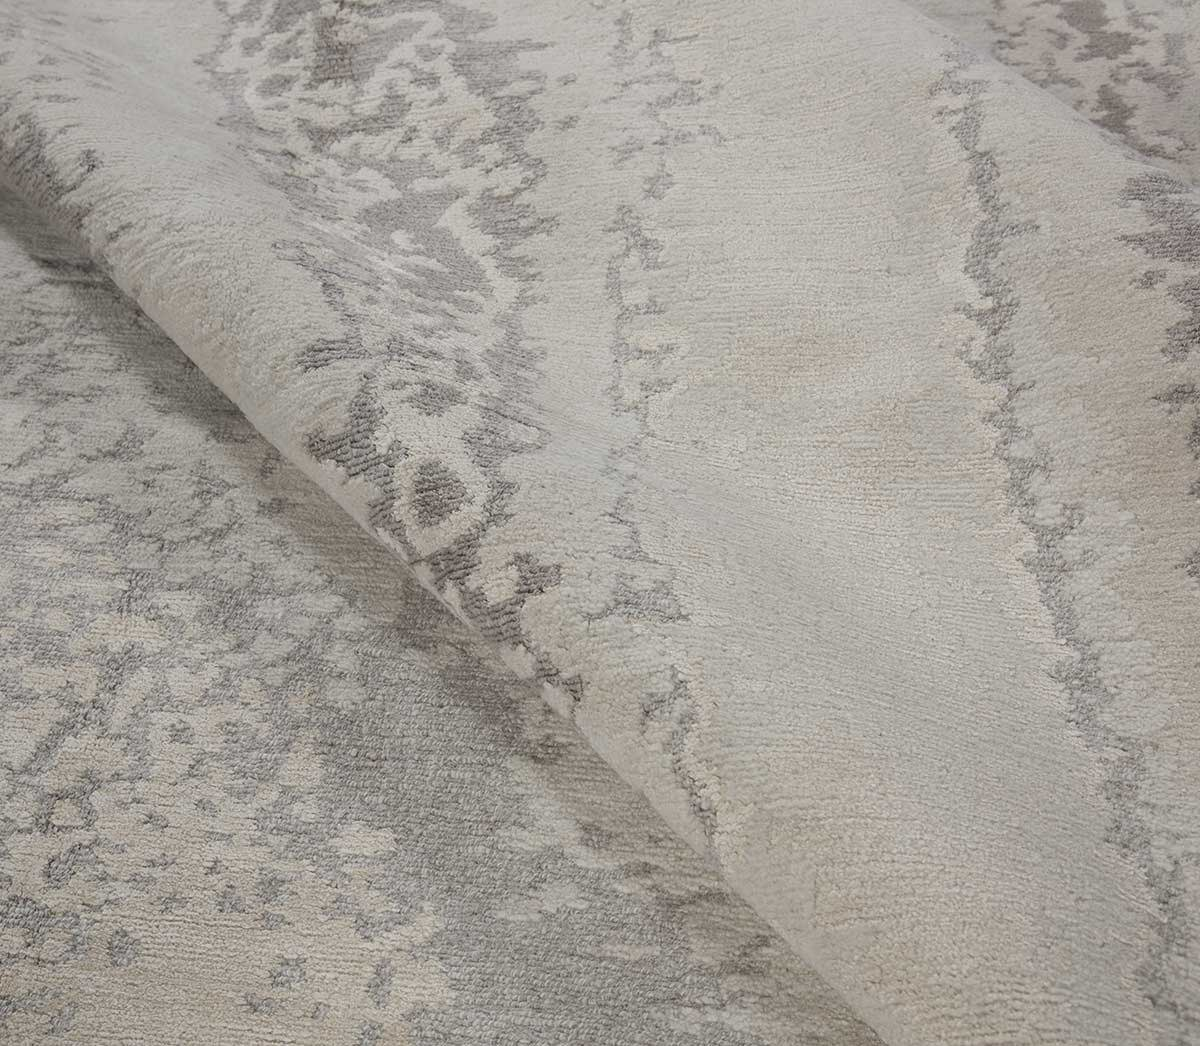 Shoreline Oatmeal sample is a organic style hand knotted rug by Tufenkian